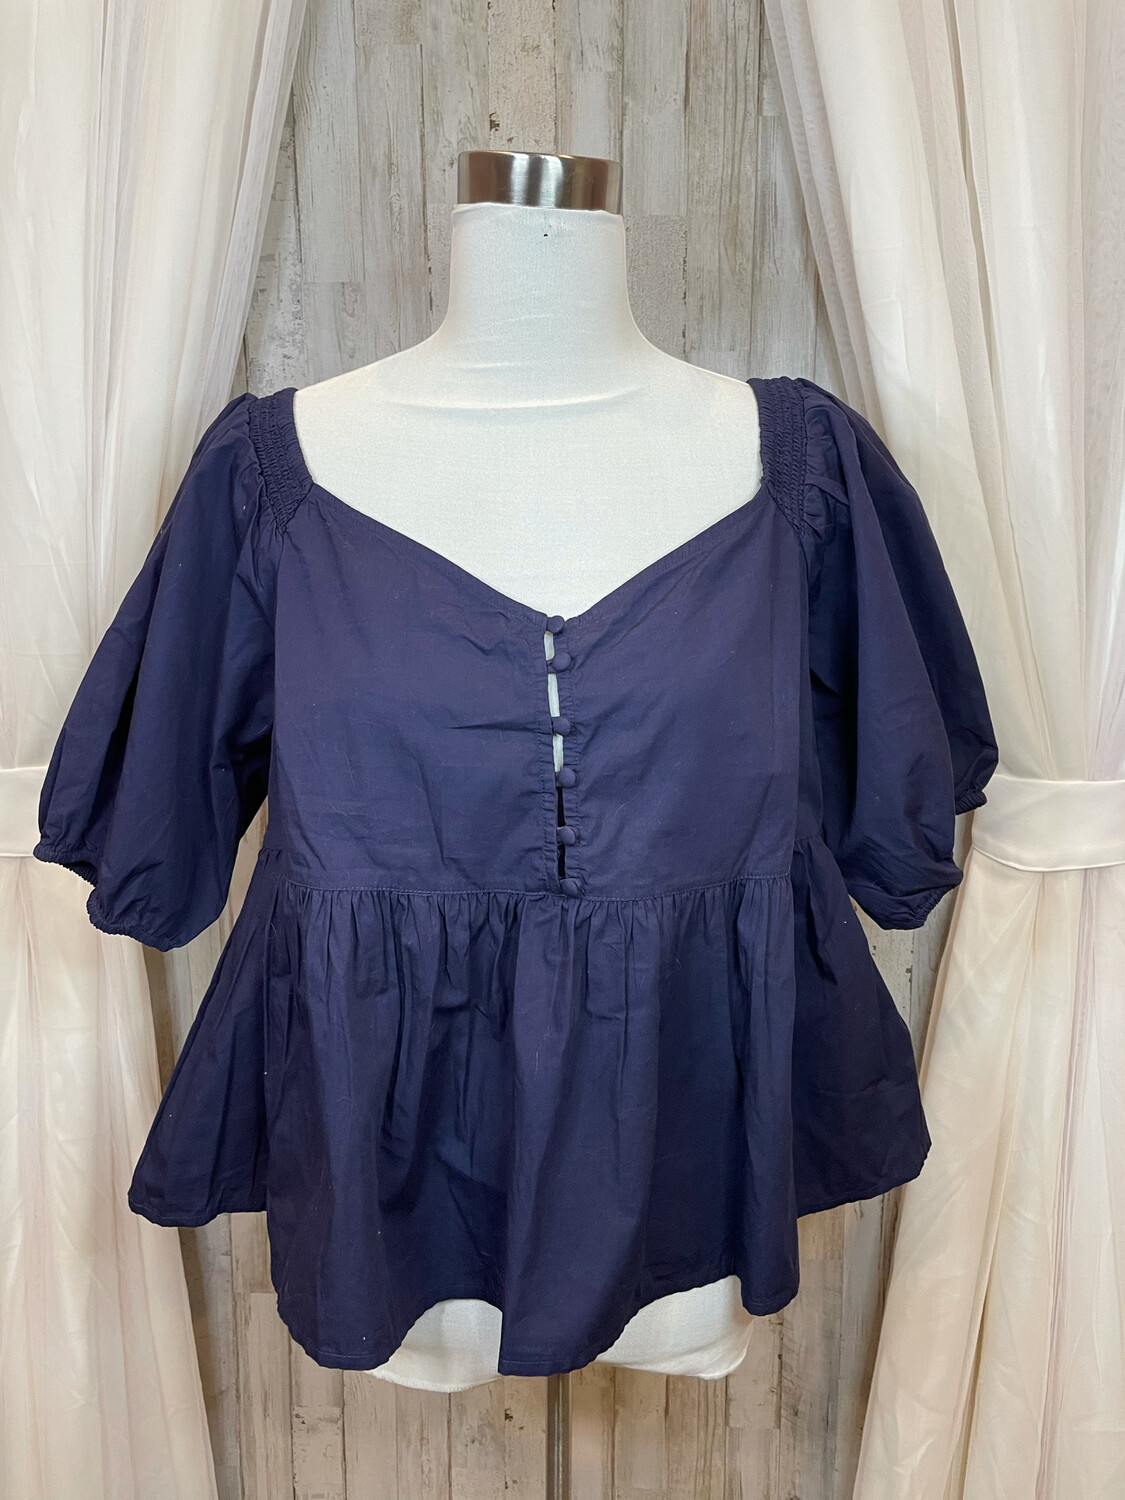 Free People Navy Top w/Button Accent & Ruffle Trim - L